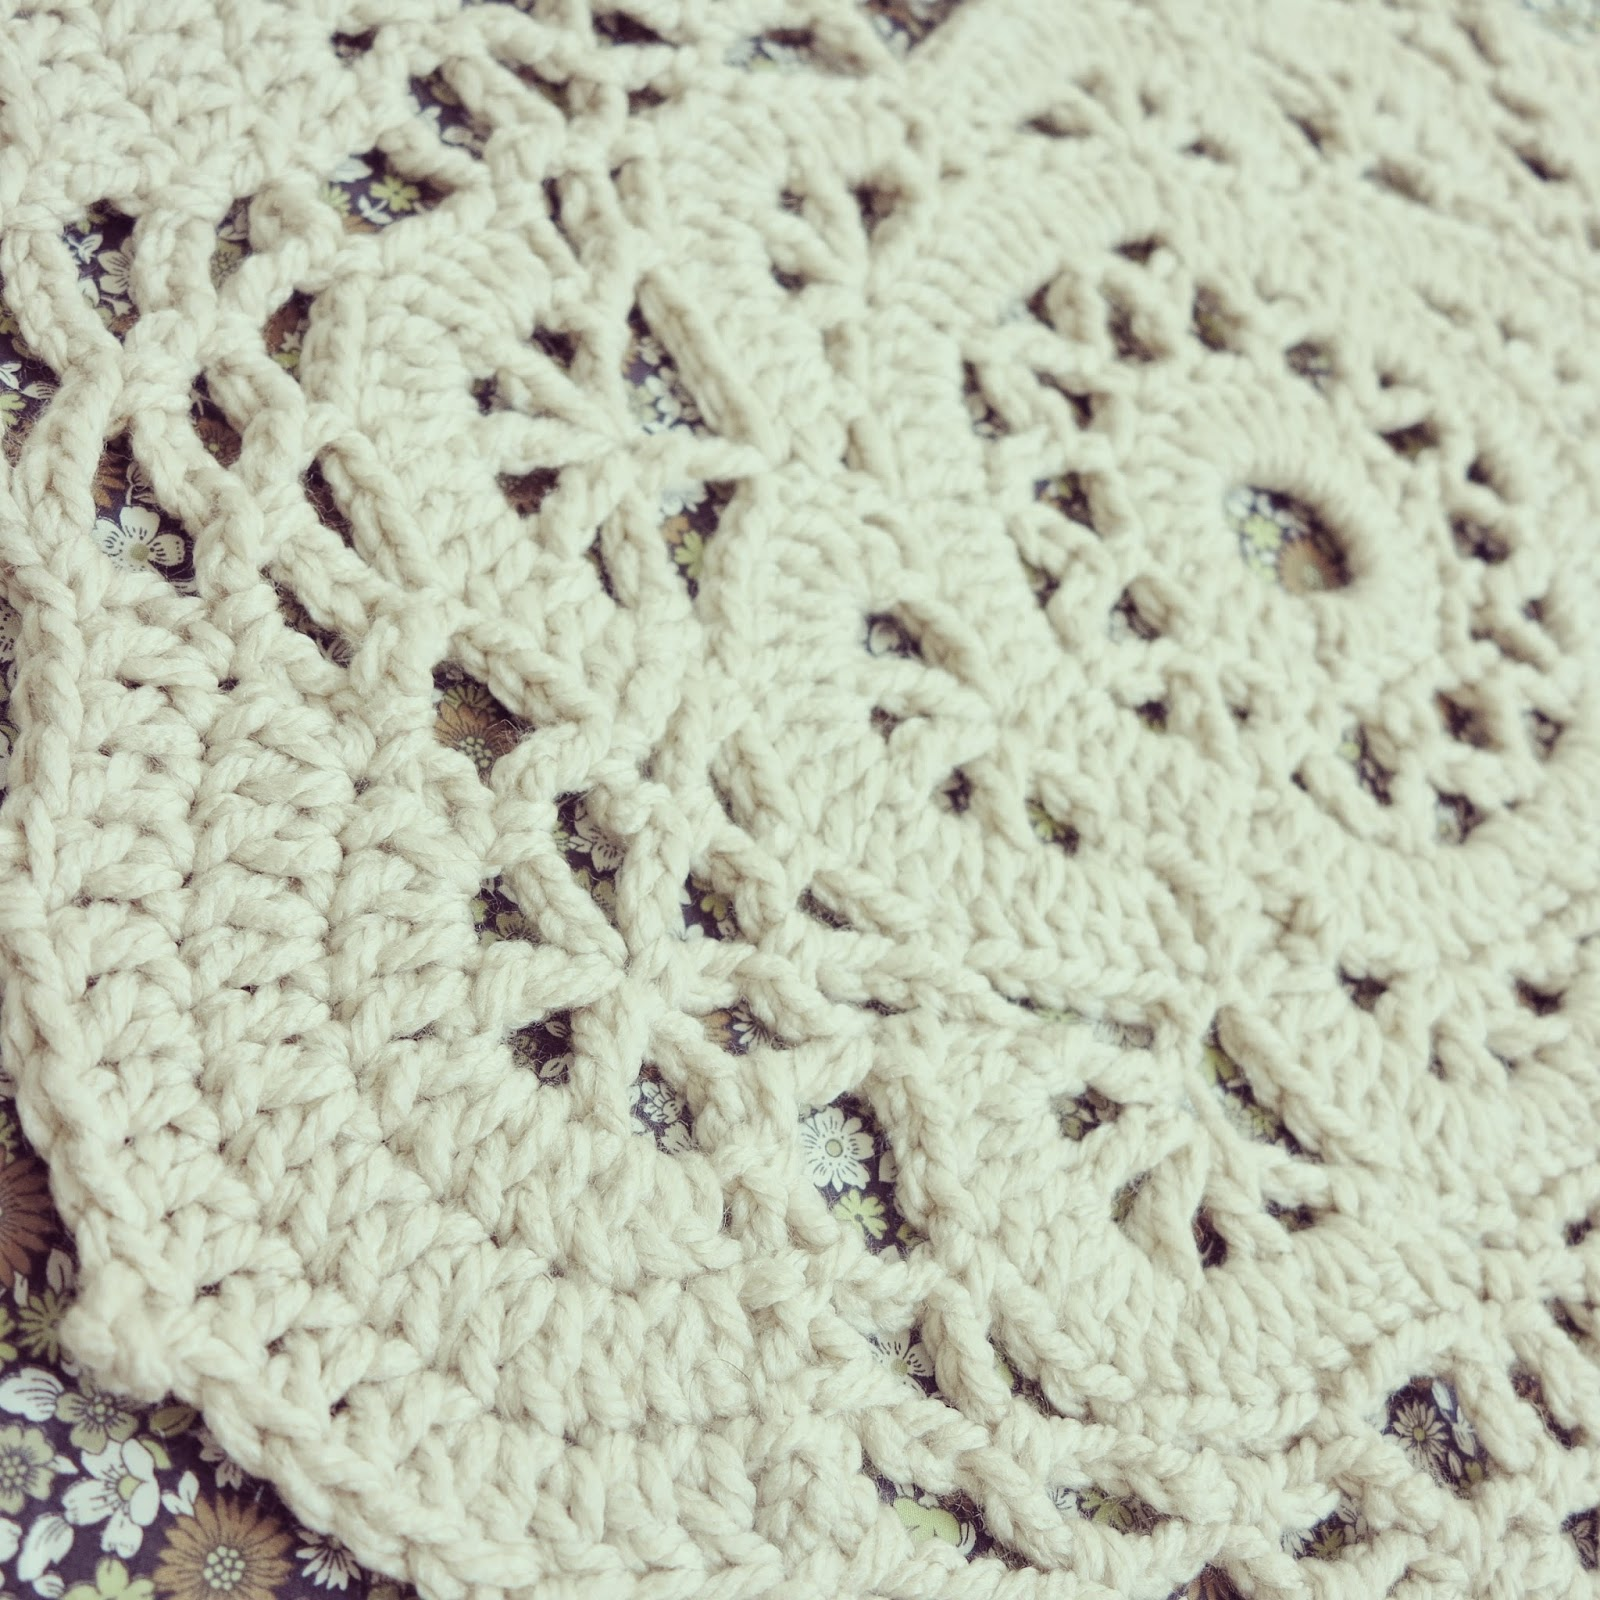 Crochet Patterns To Use Up Yarn : ByHaafner * crochet : Doilified Rug